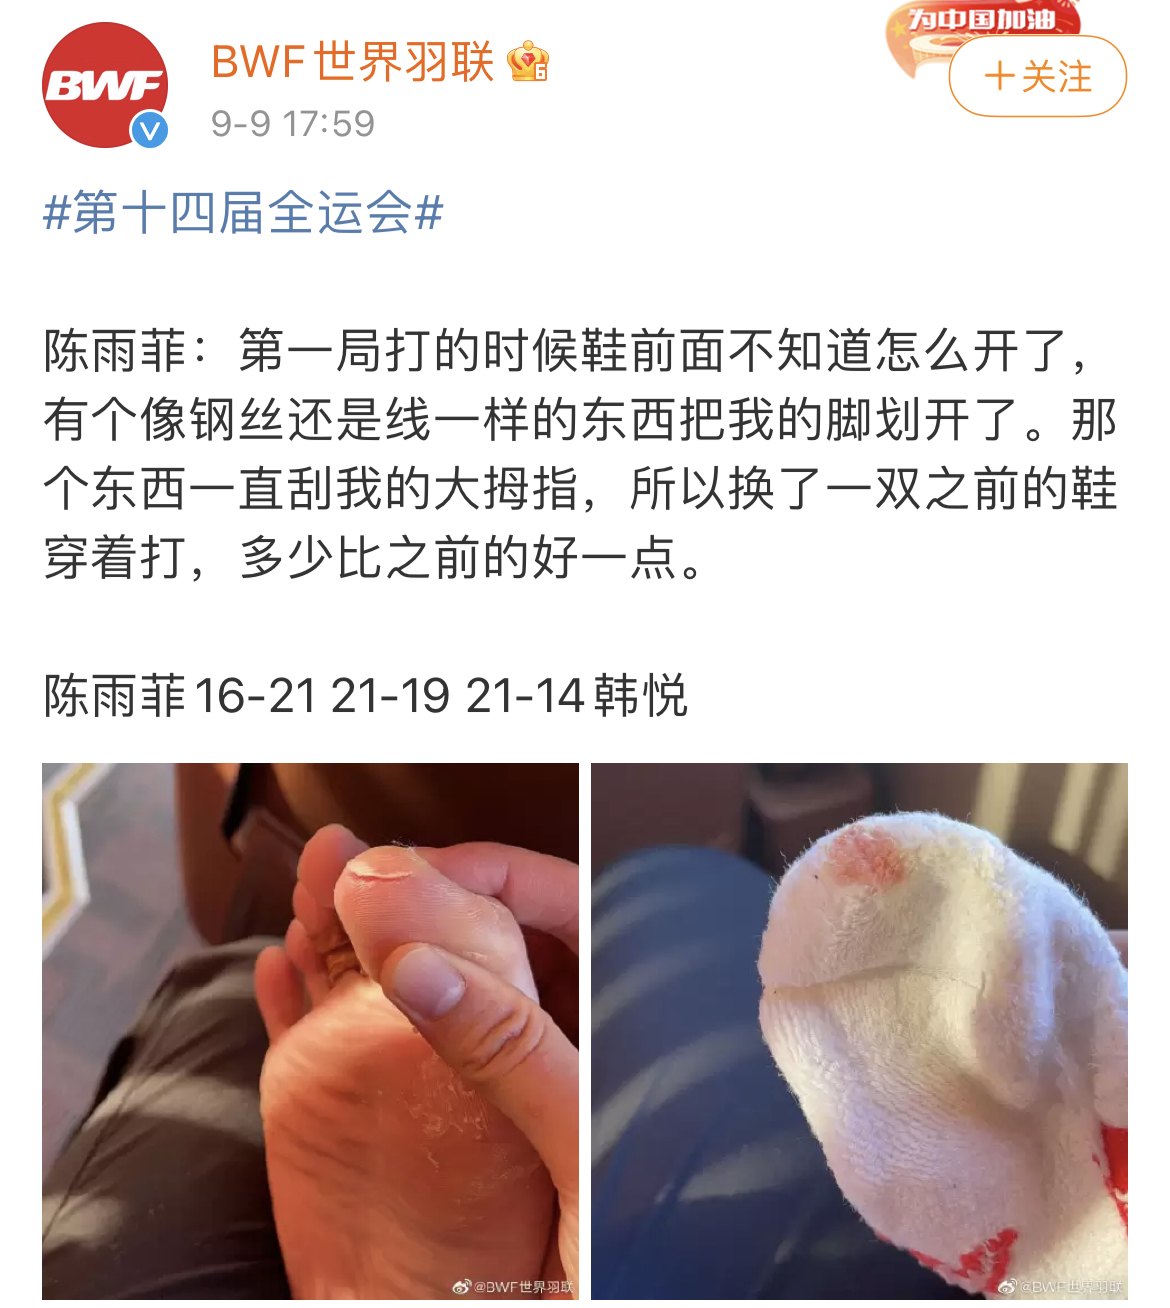 BWF posted Chen Yufei's right toe injury on its Chinese social media page. (photo: Sina)